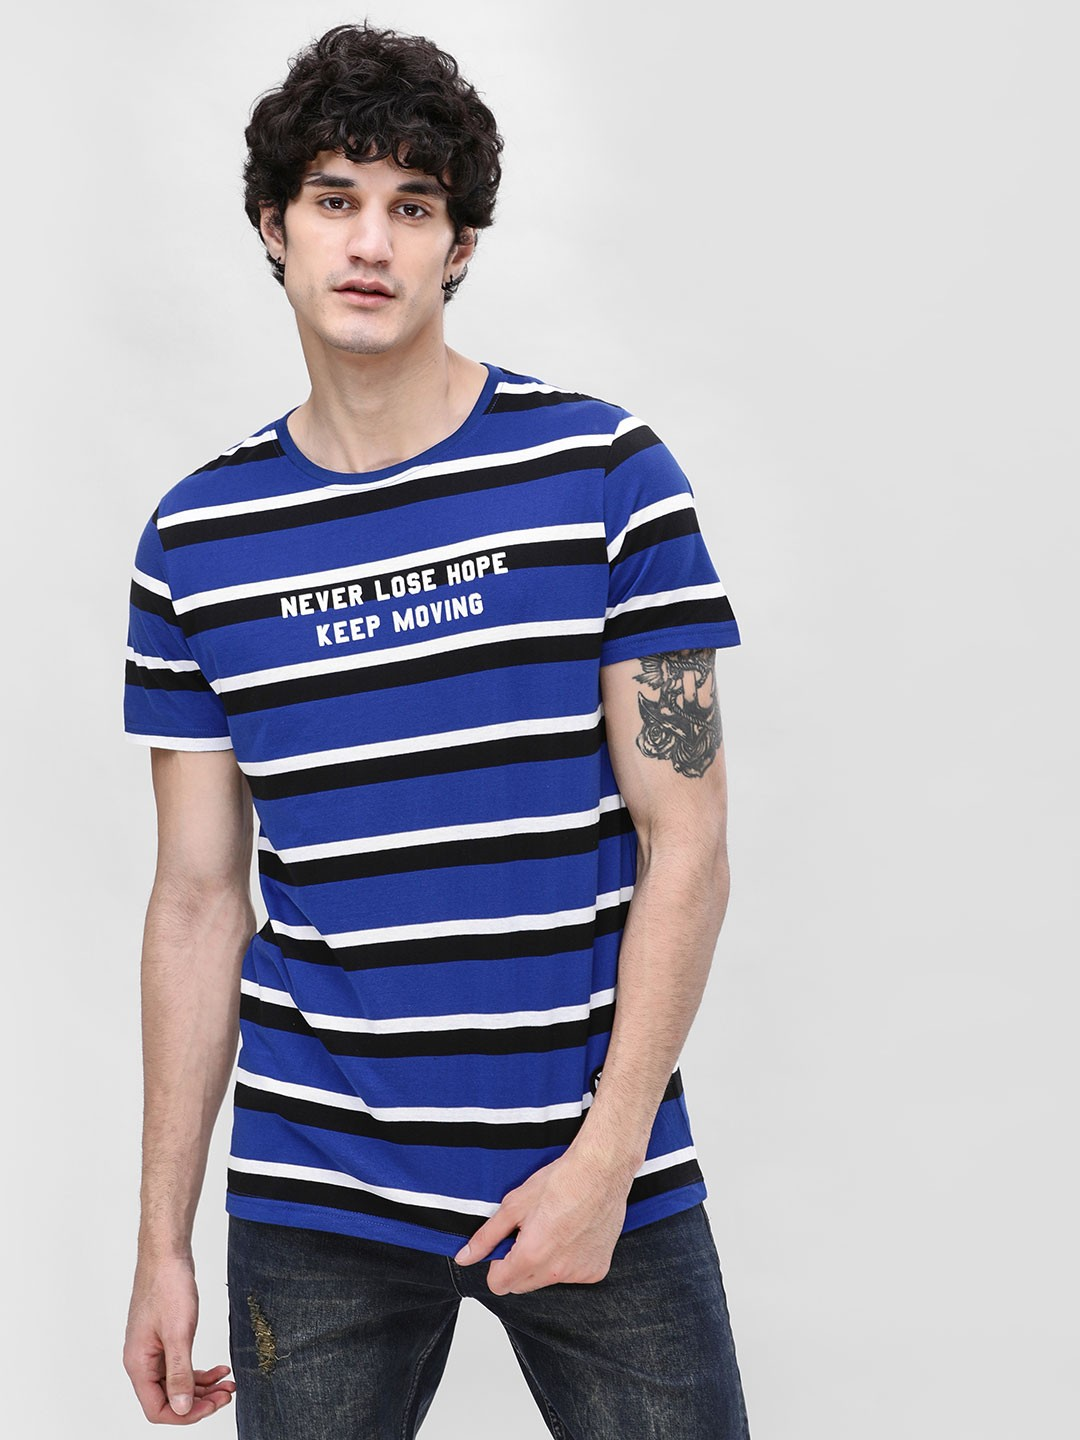 X.O.Y.O Blue Striped Slogan Print T-Shirt 1